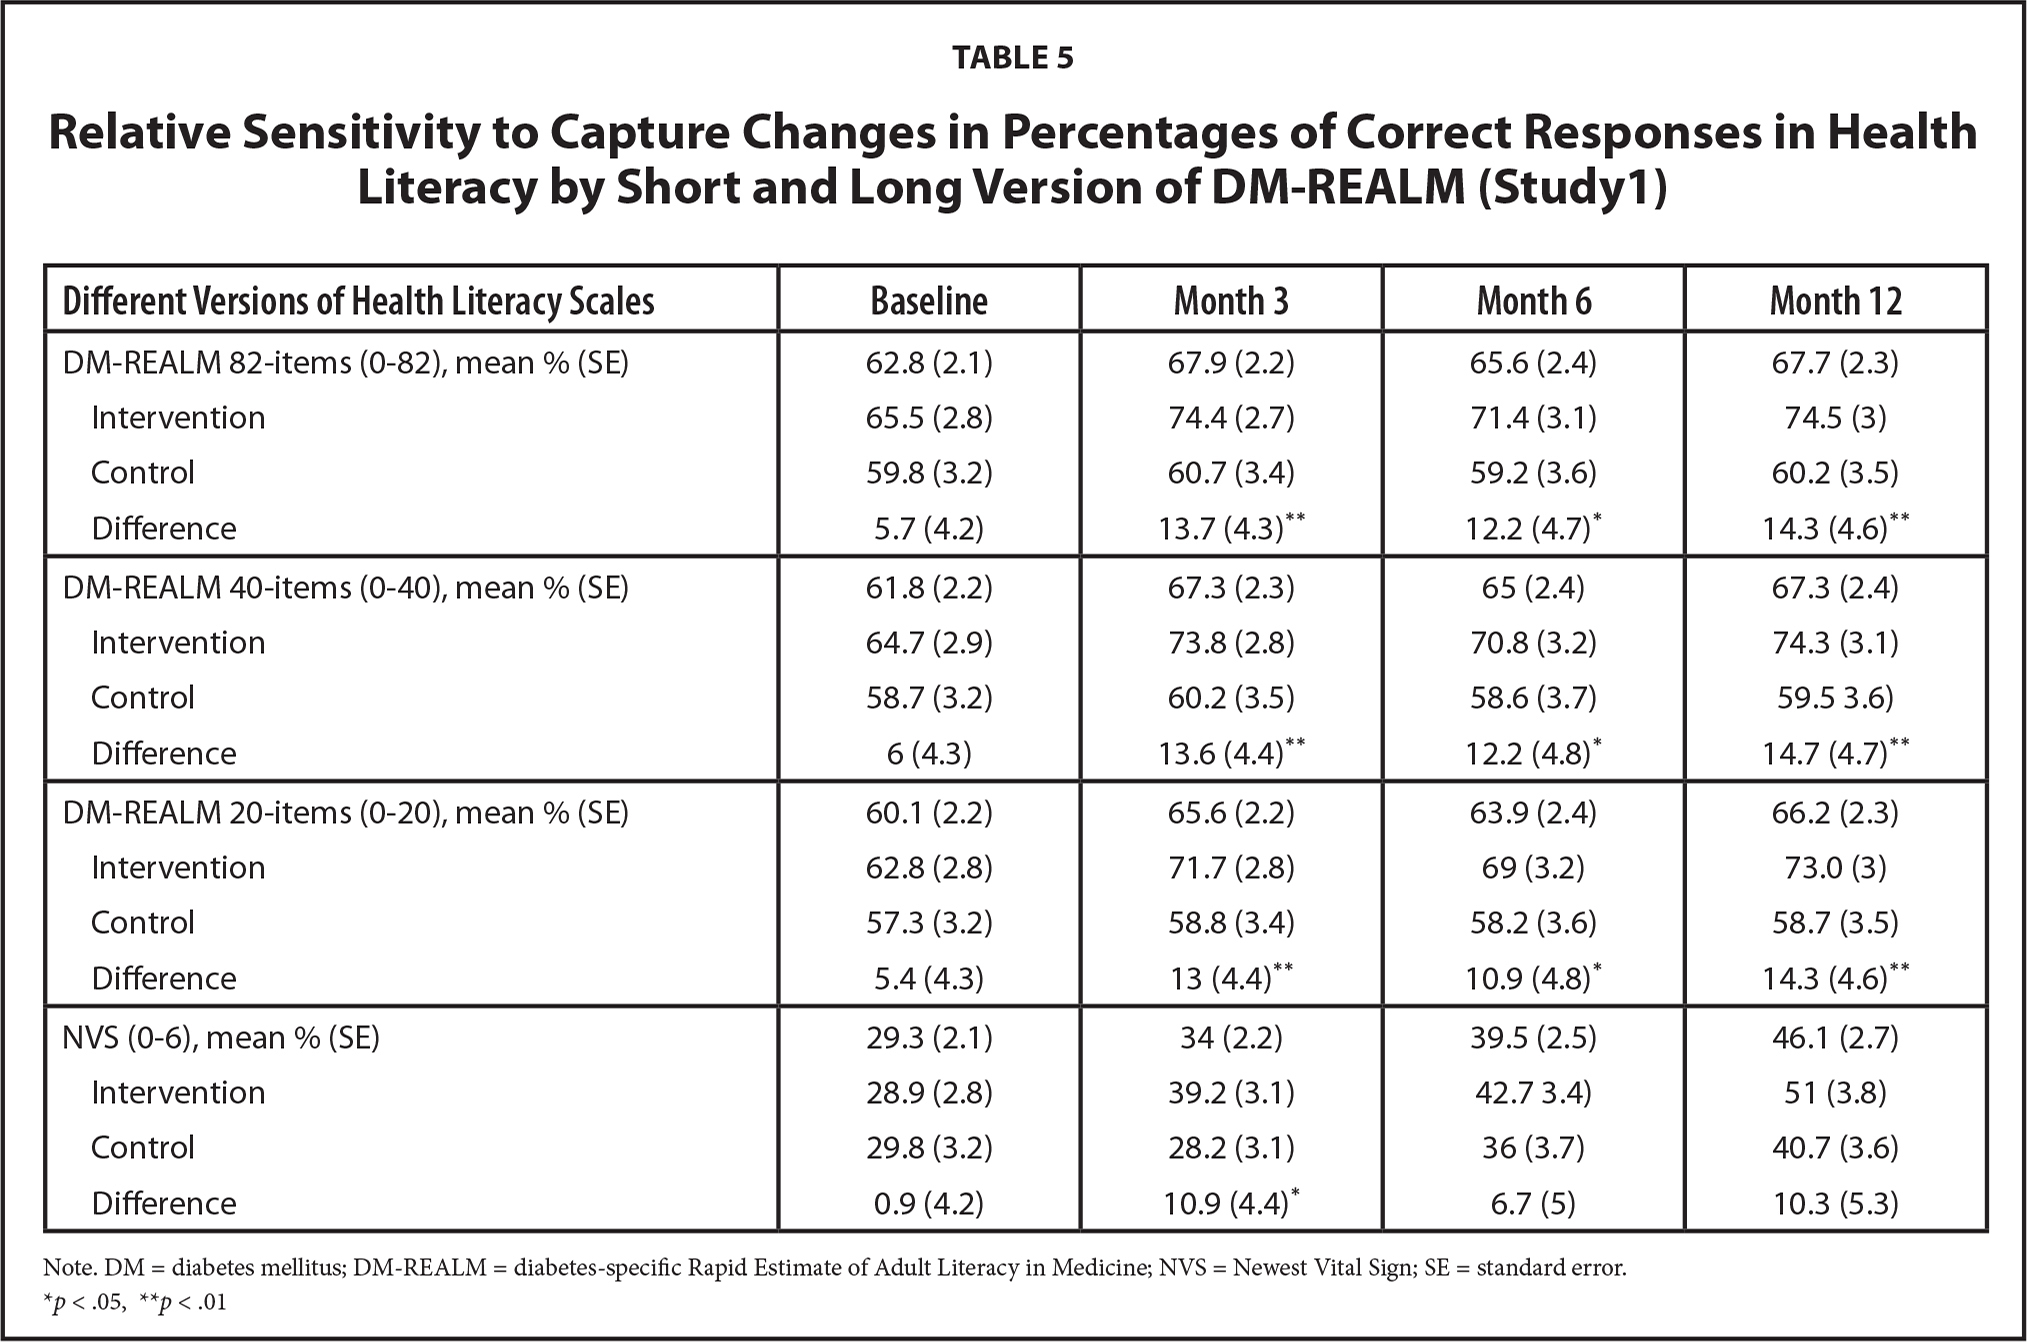 Relative Sensitivity to Capture Changes in Percentages of Correct Responses in Health Literacy by Short and Long Version of DM-REALM (Study1)